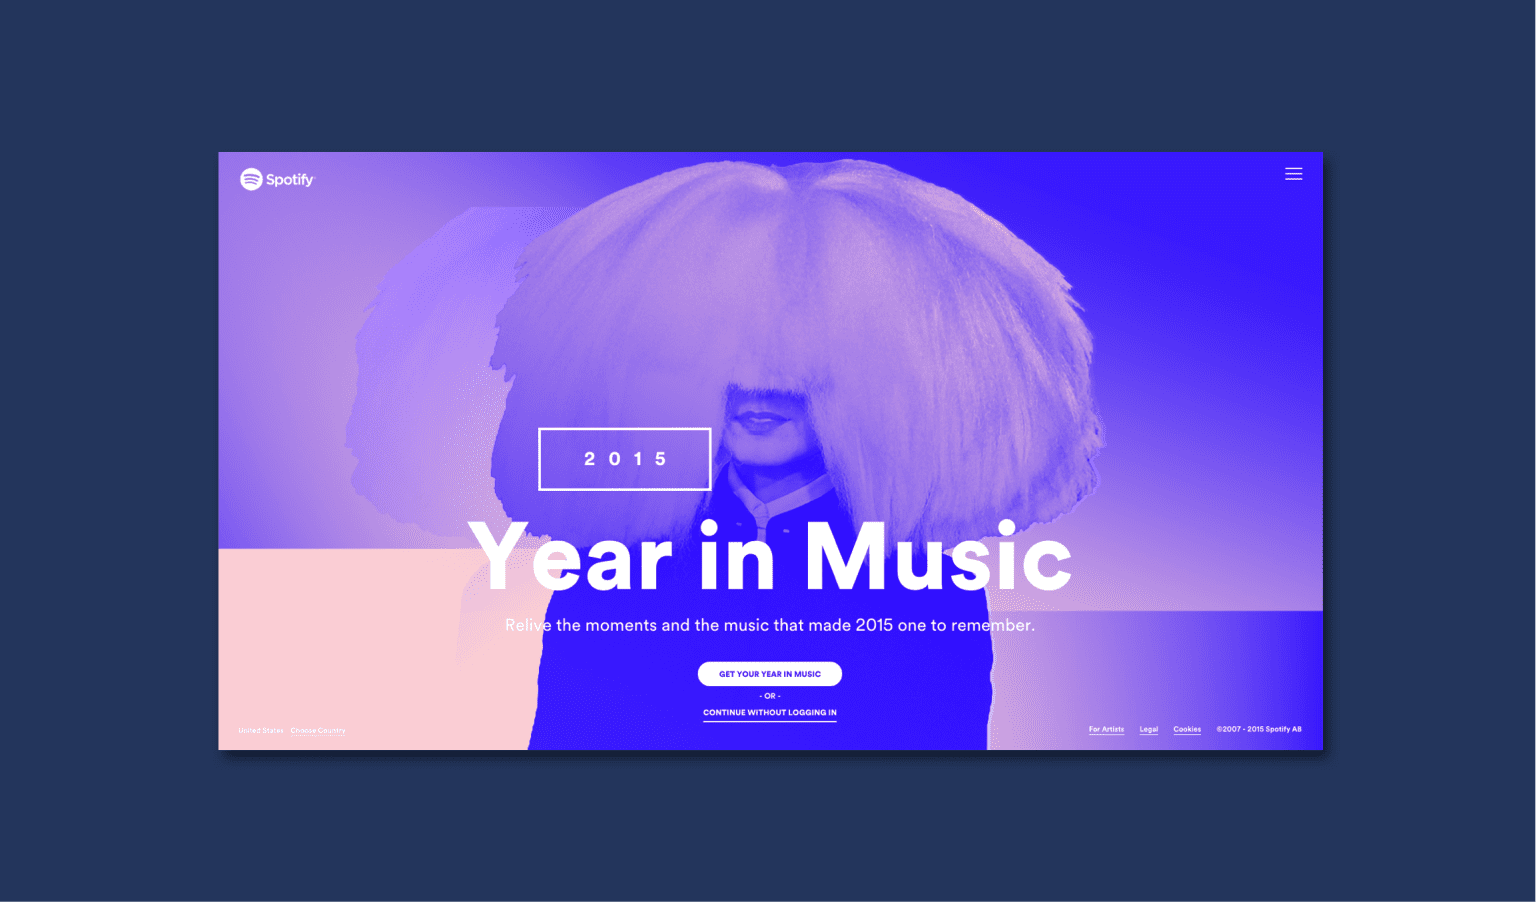 Year in Music 2015